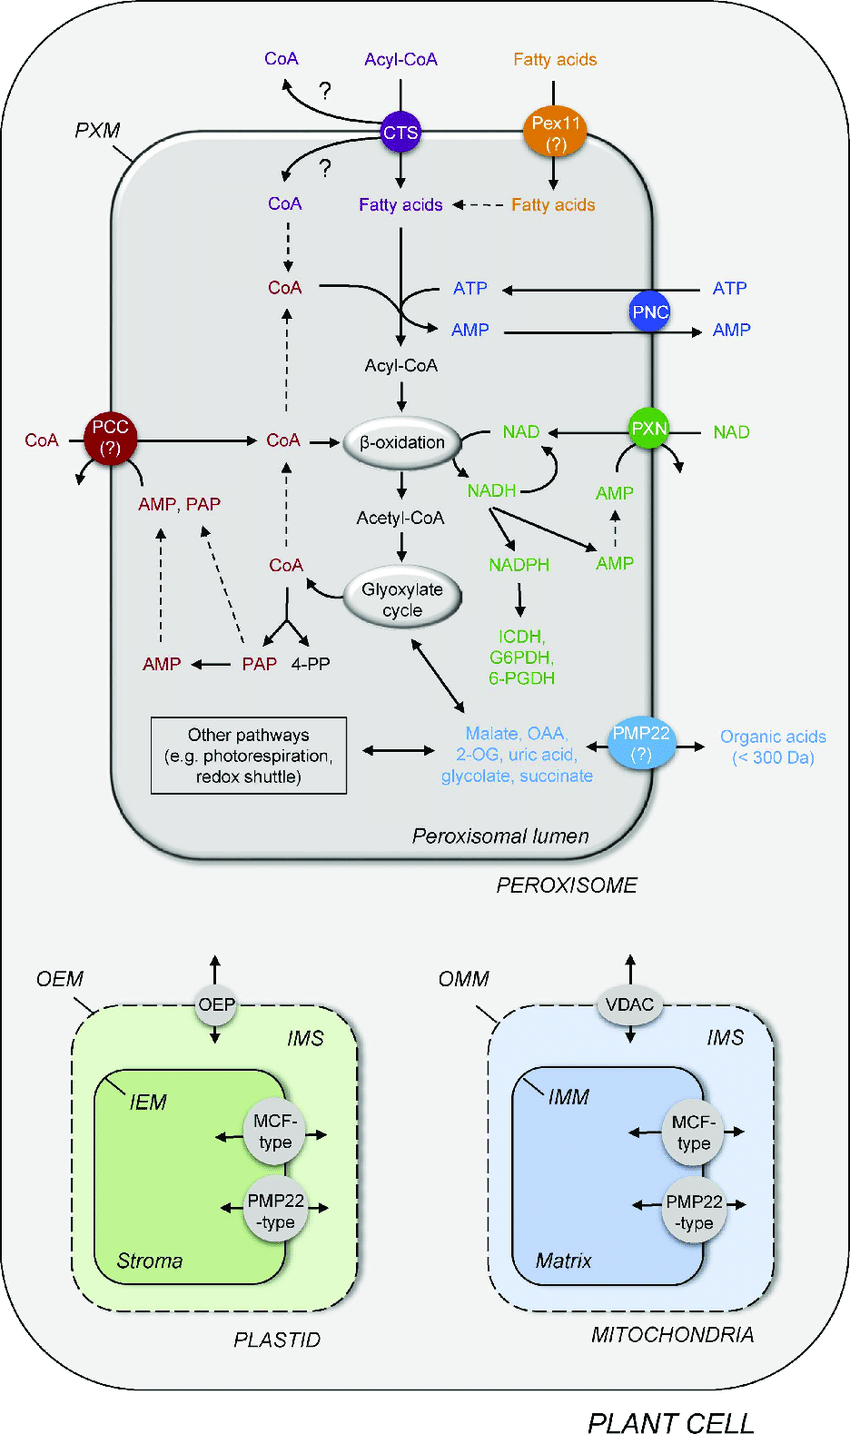 medium resolution of scheme of a plant cell presenting the known peroxisomal transporter and channel proteins connecting peroxisomal metabolism